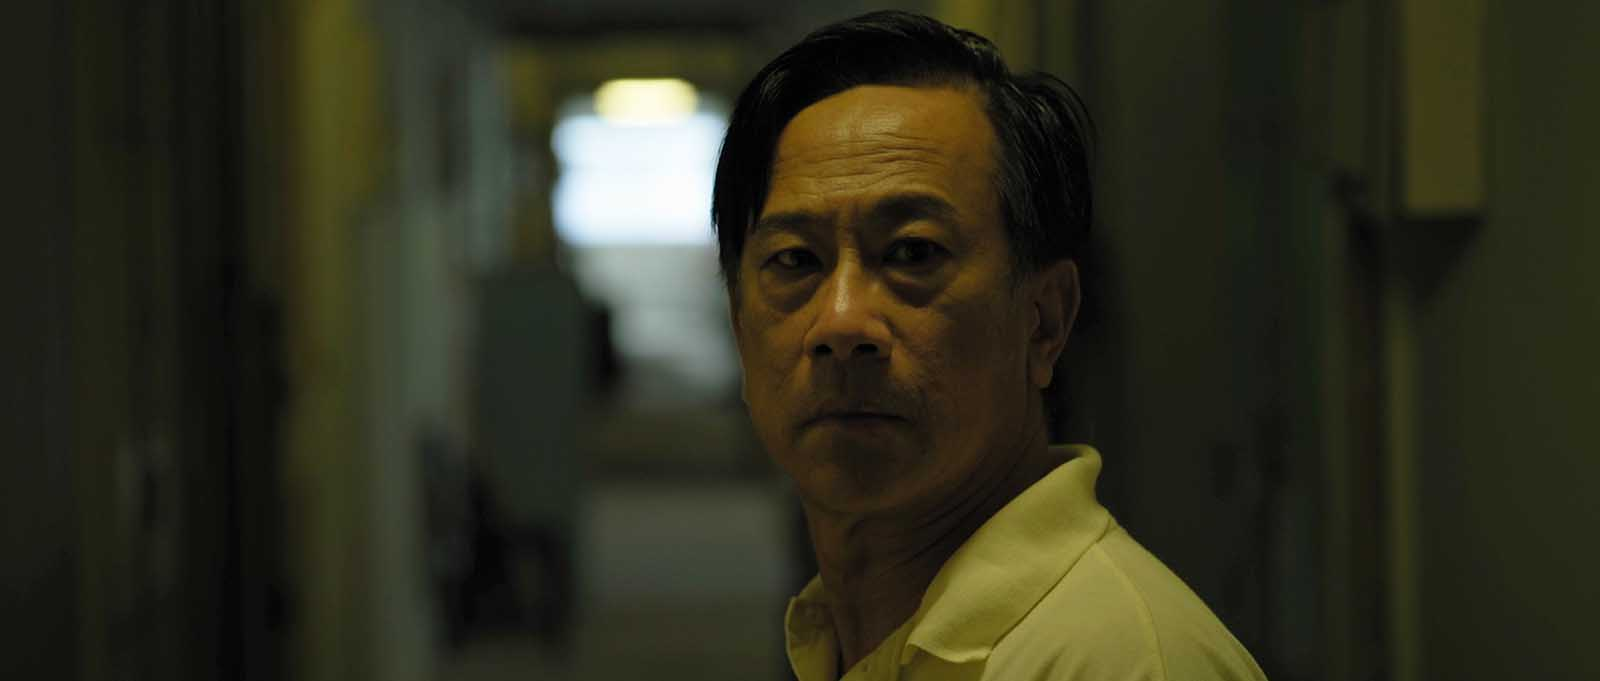 Goh Ming Siu and Scott C. Hillyard have collaborated on their first film together, 'Repossession'. The horror feature is starting its film festival circuit.